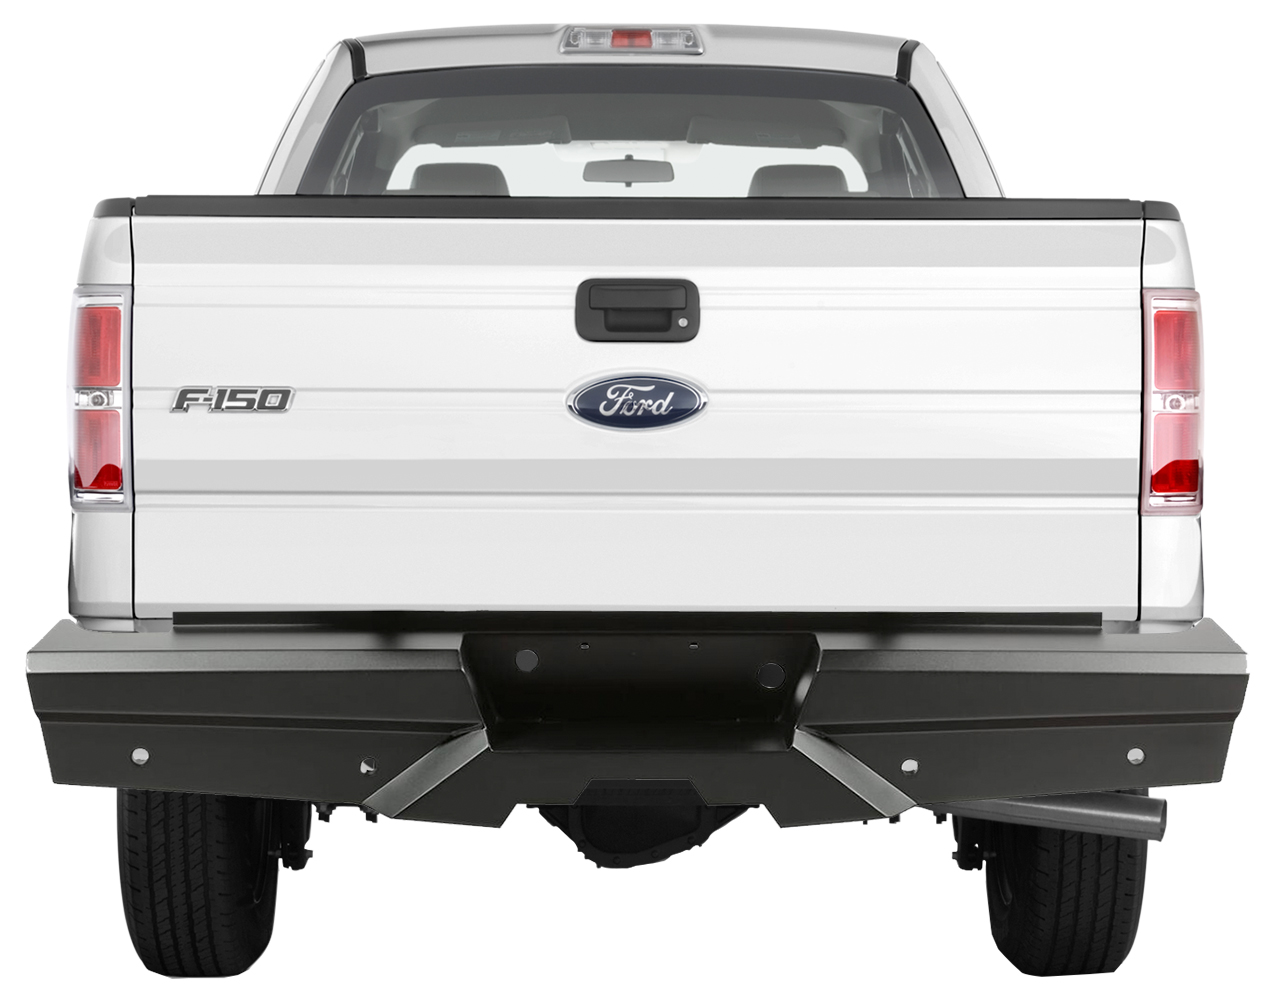 Steelcraft elevation hd rear bumper for What is rear elevation